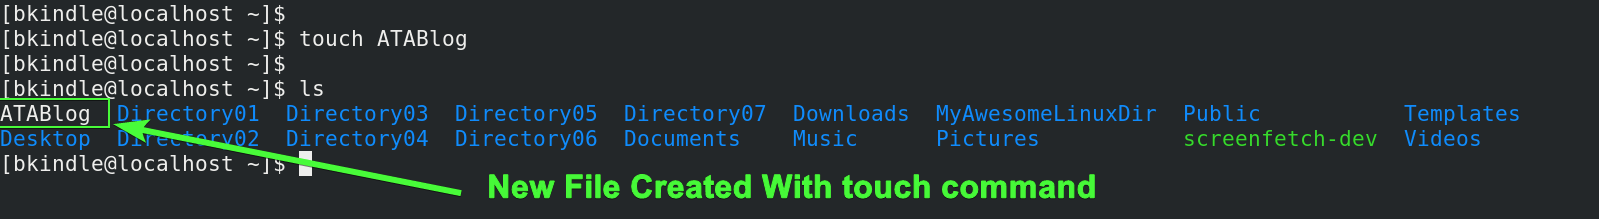 Creating a file with the touch command.